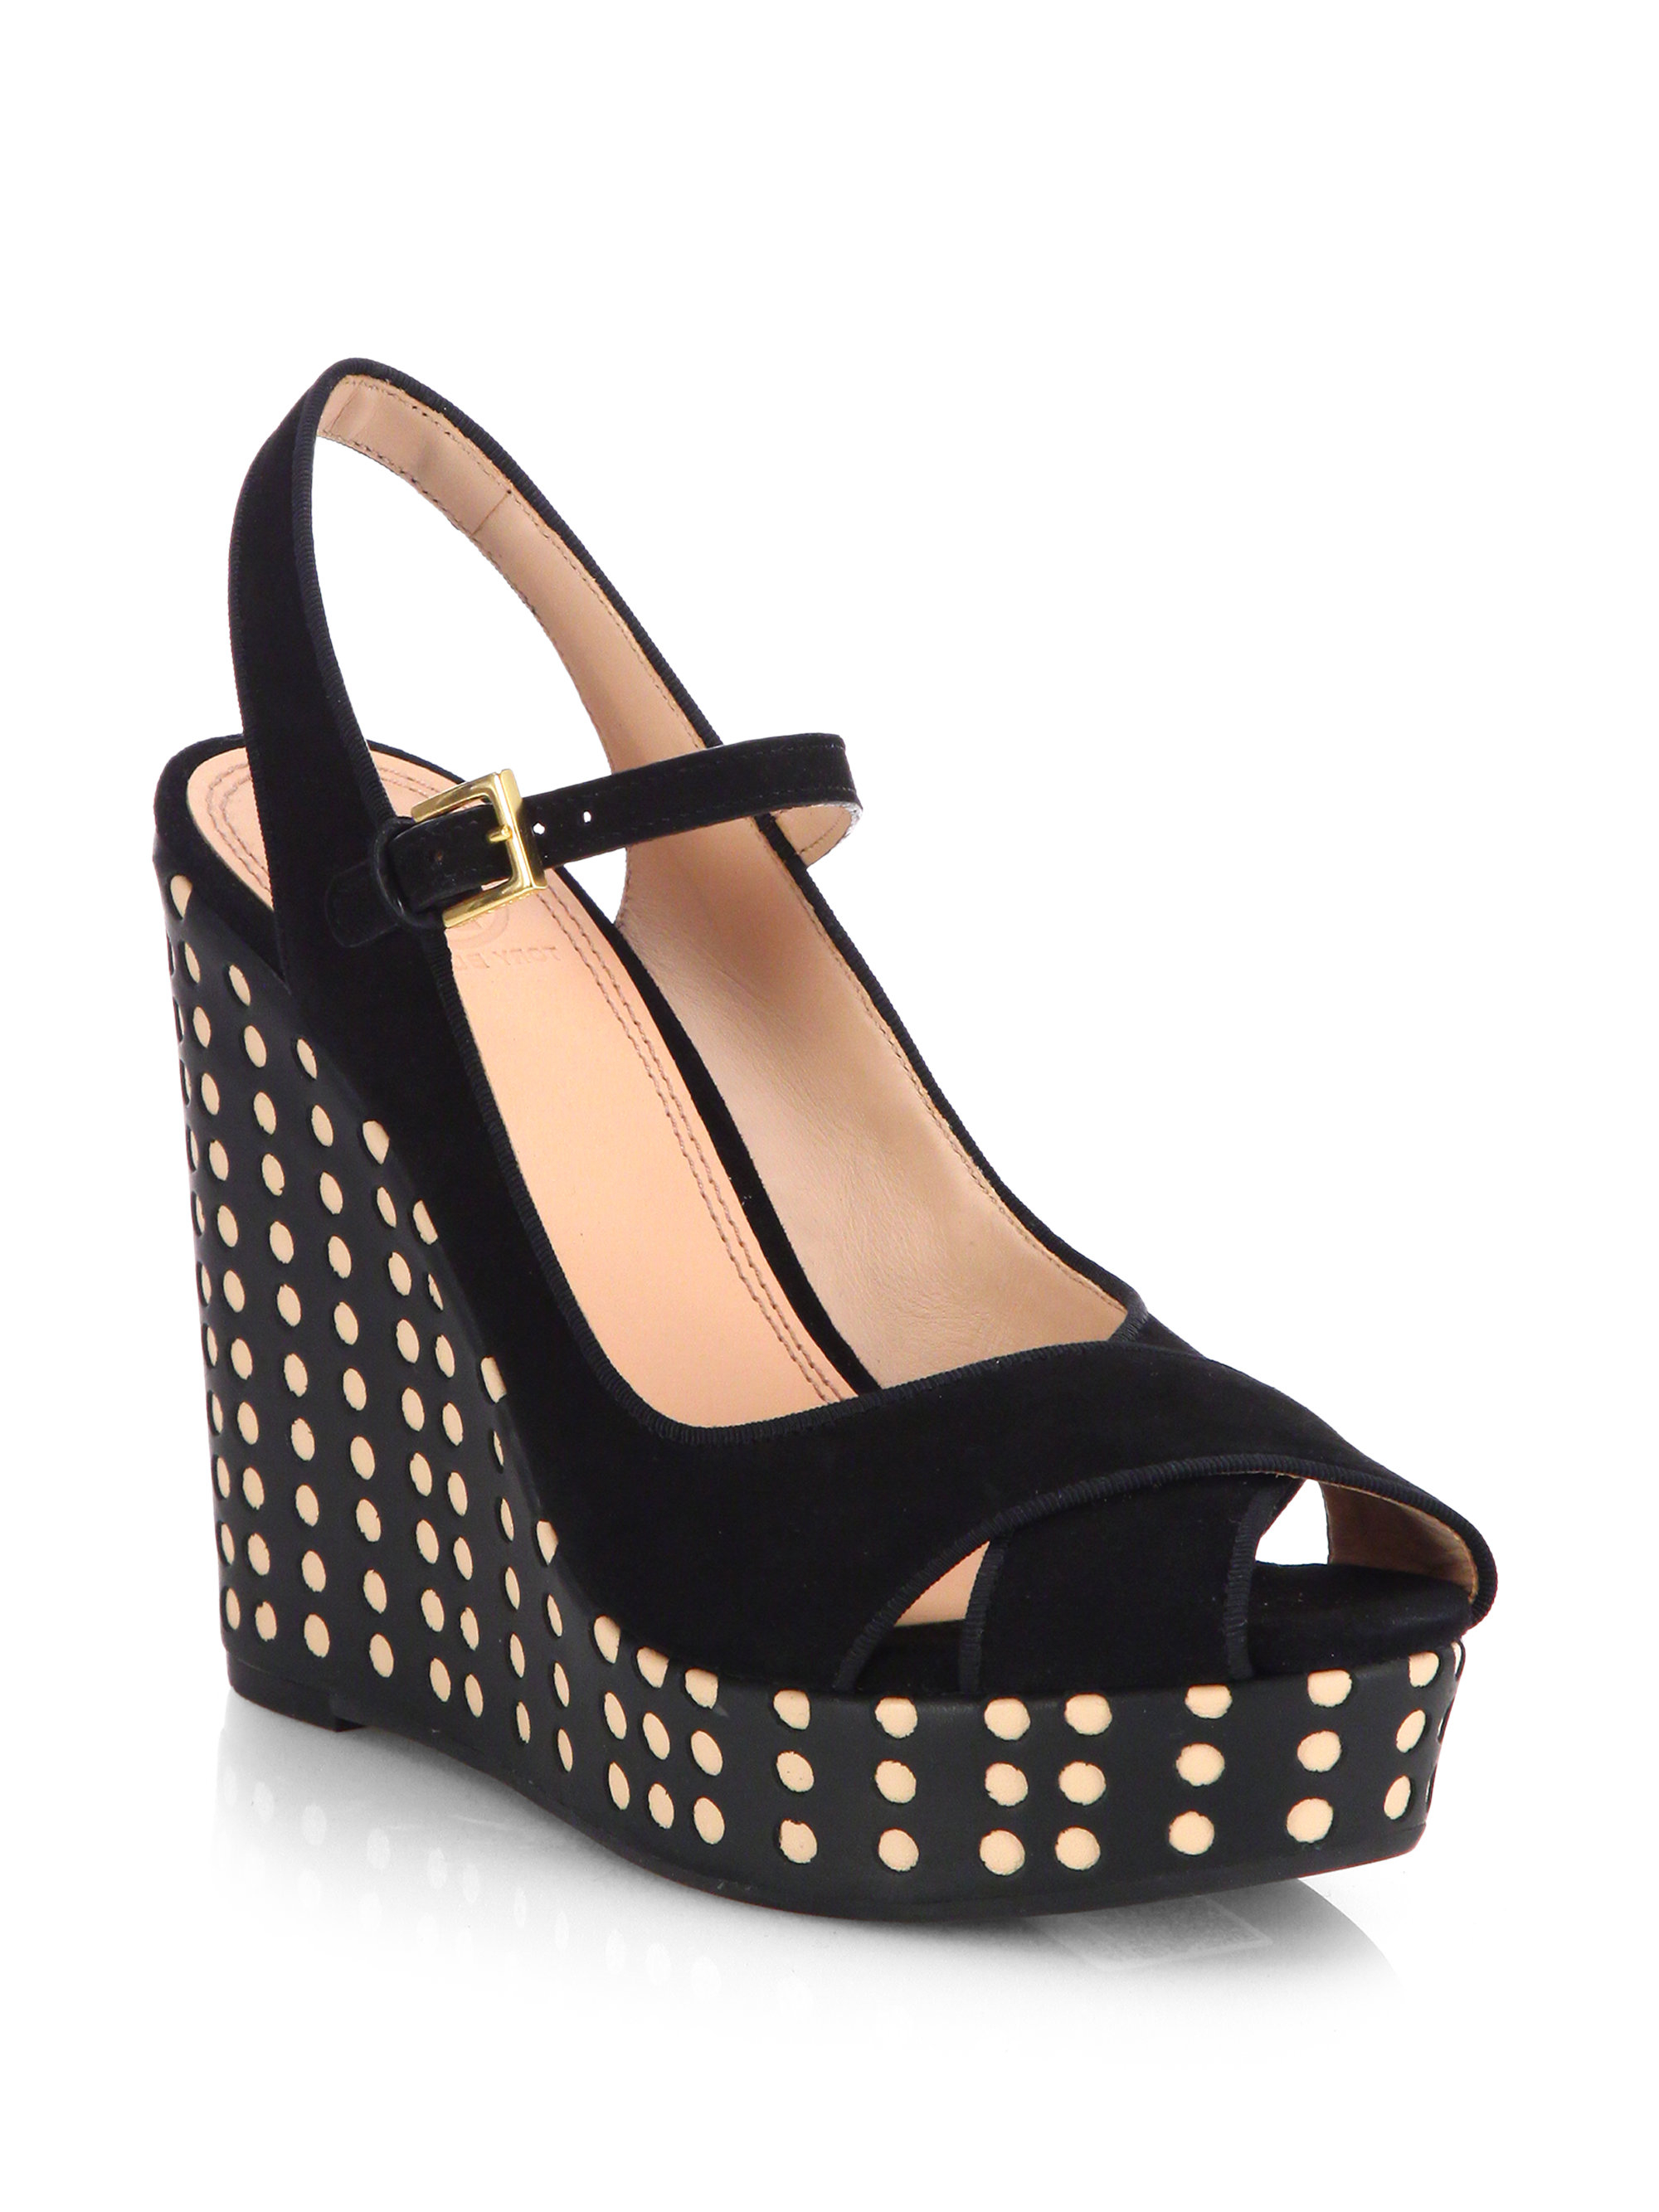 Tory Burch Ollie Suede Leather Polka Dot Wedge Sandals In